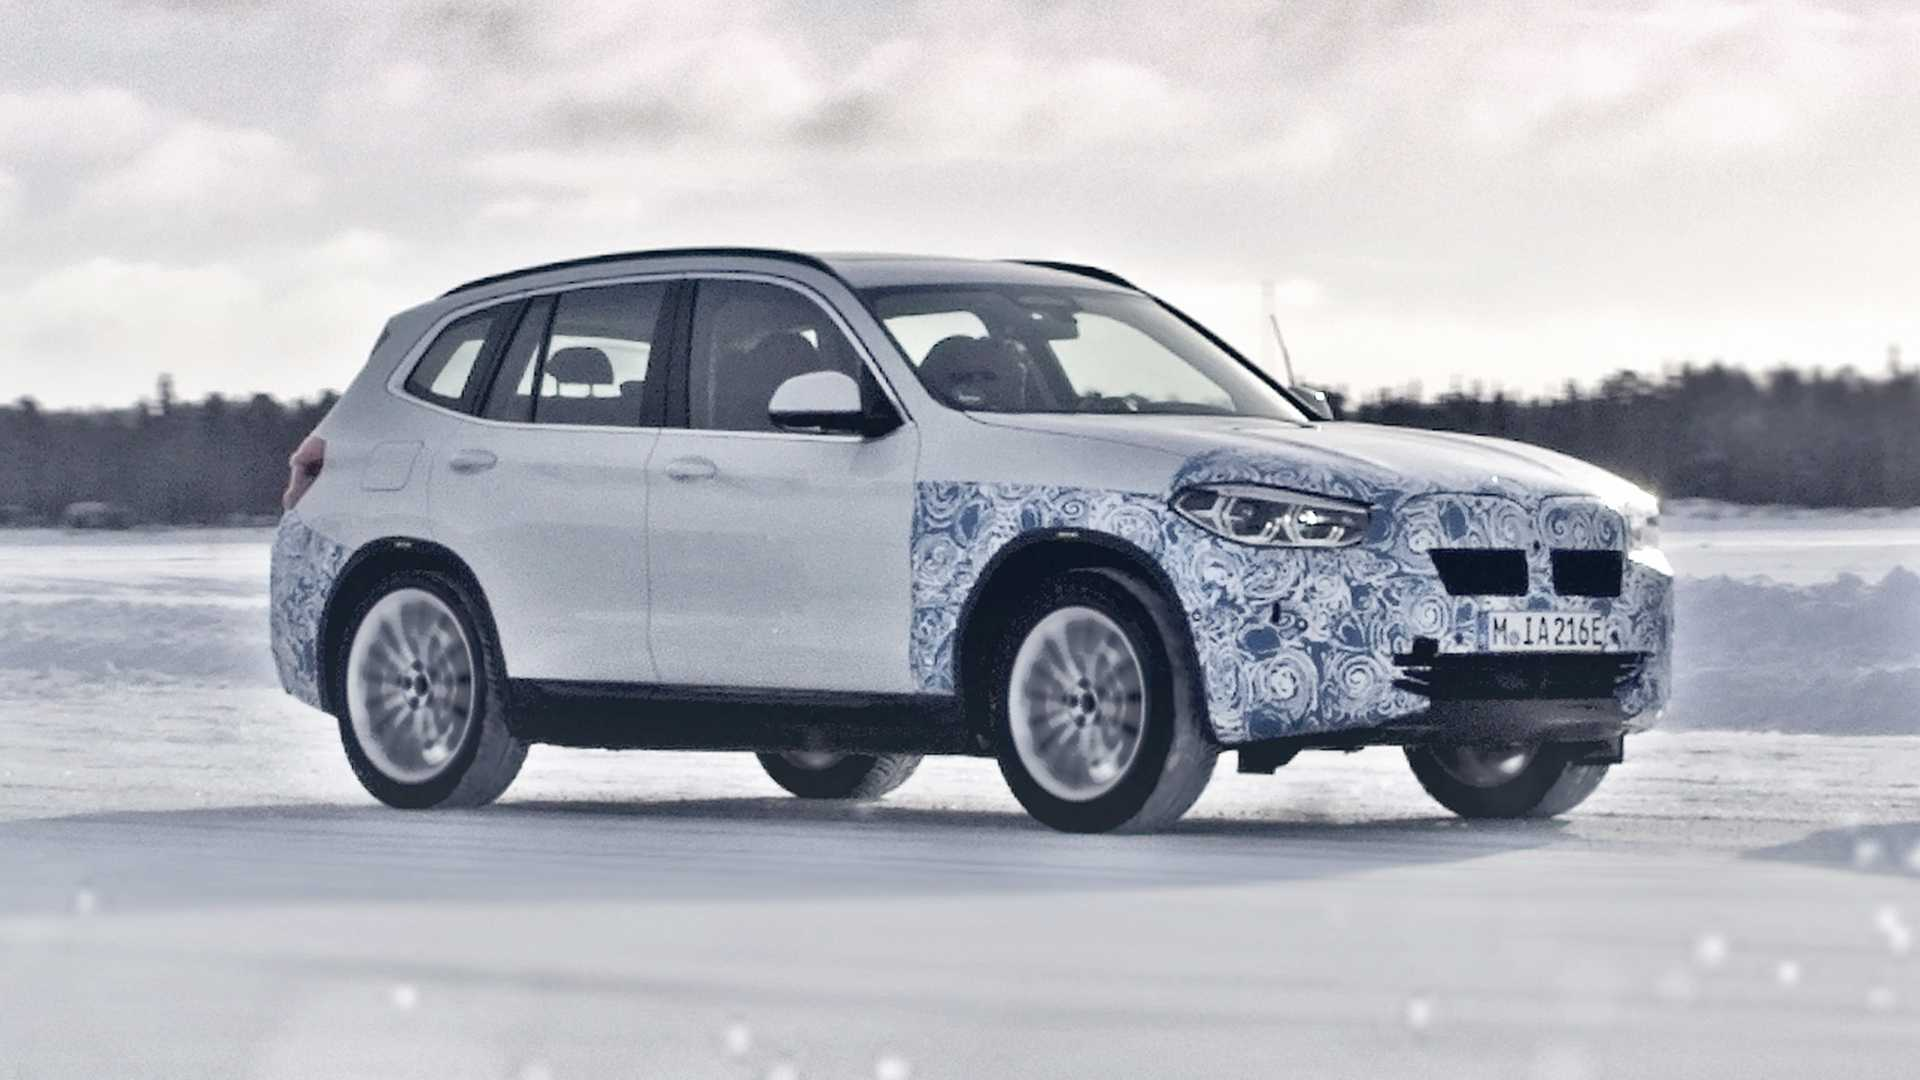 Bmw Ix3 To Be Available In Europe First In 2020 U S Later